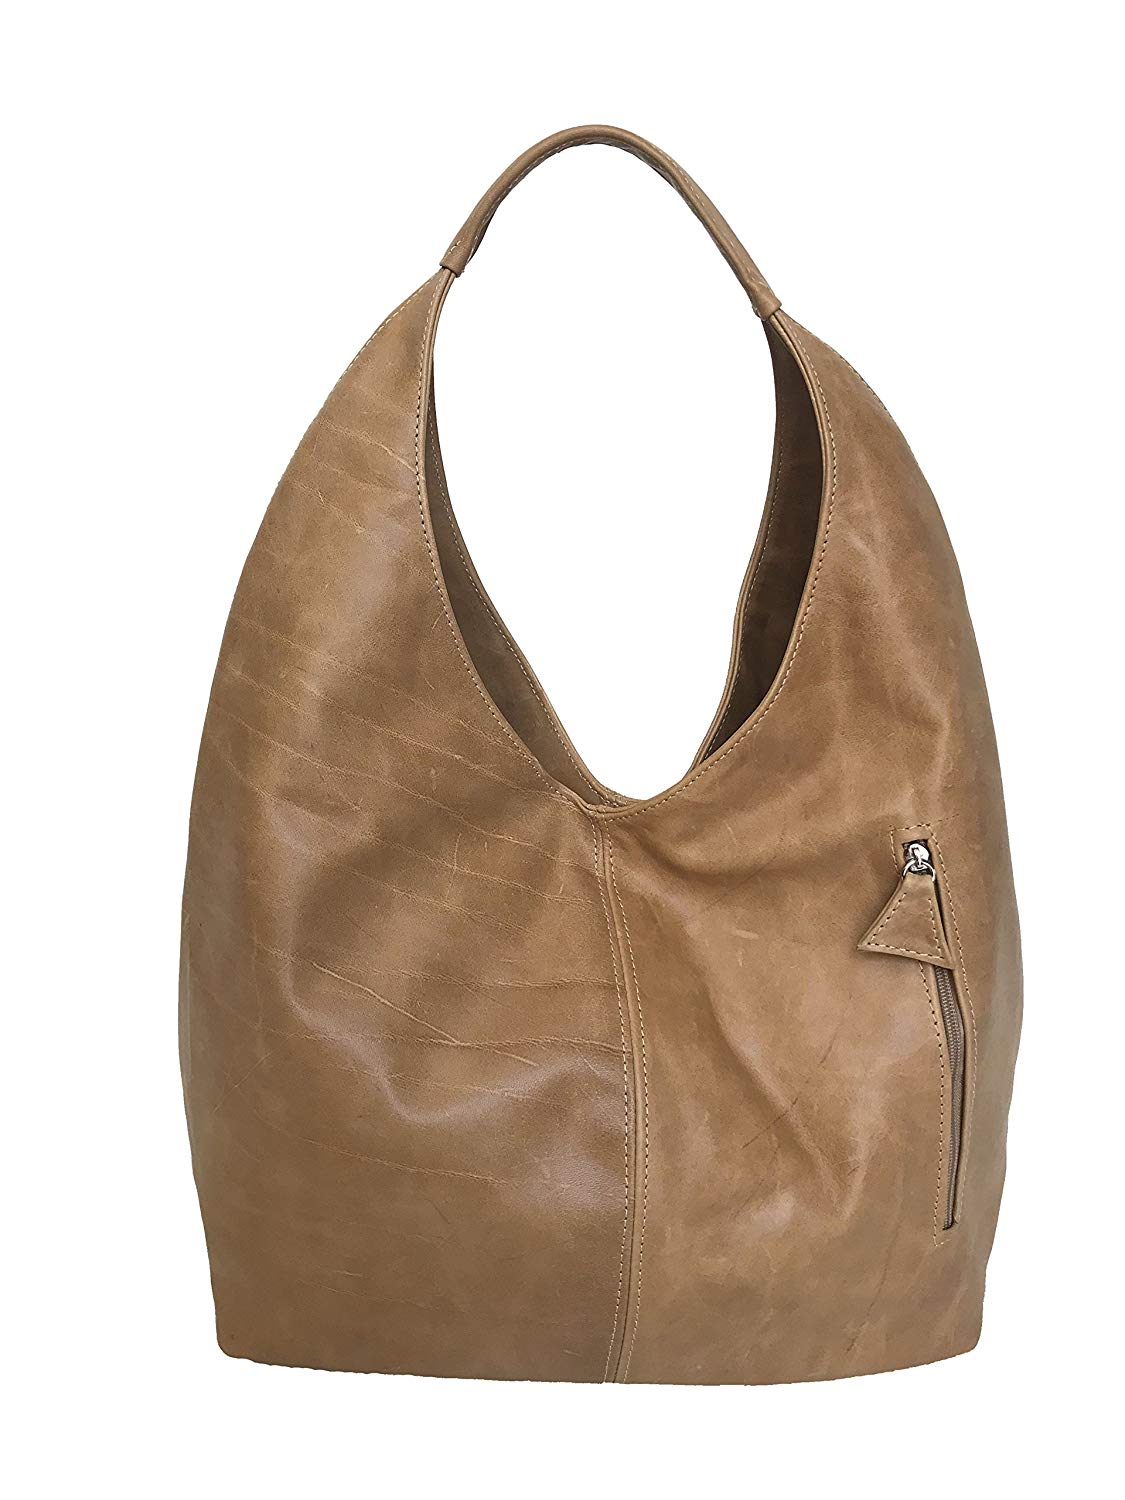 5aab74d2c5 Get Quotations · Fgalaze Distressed Camel Leather Hobo Bag w Pockets